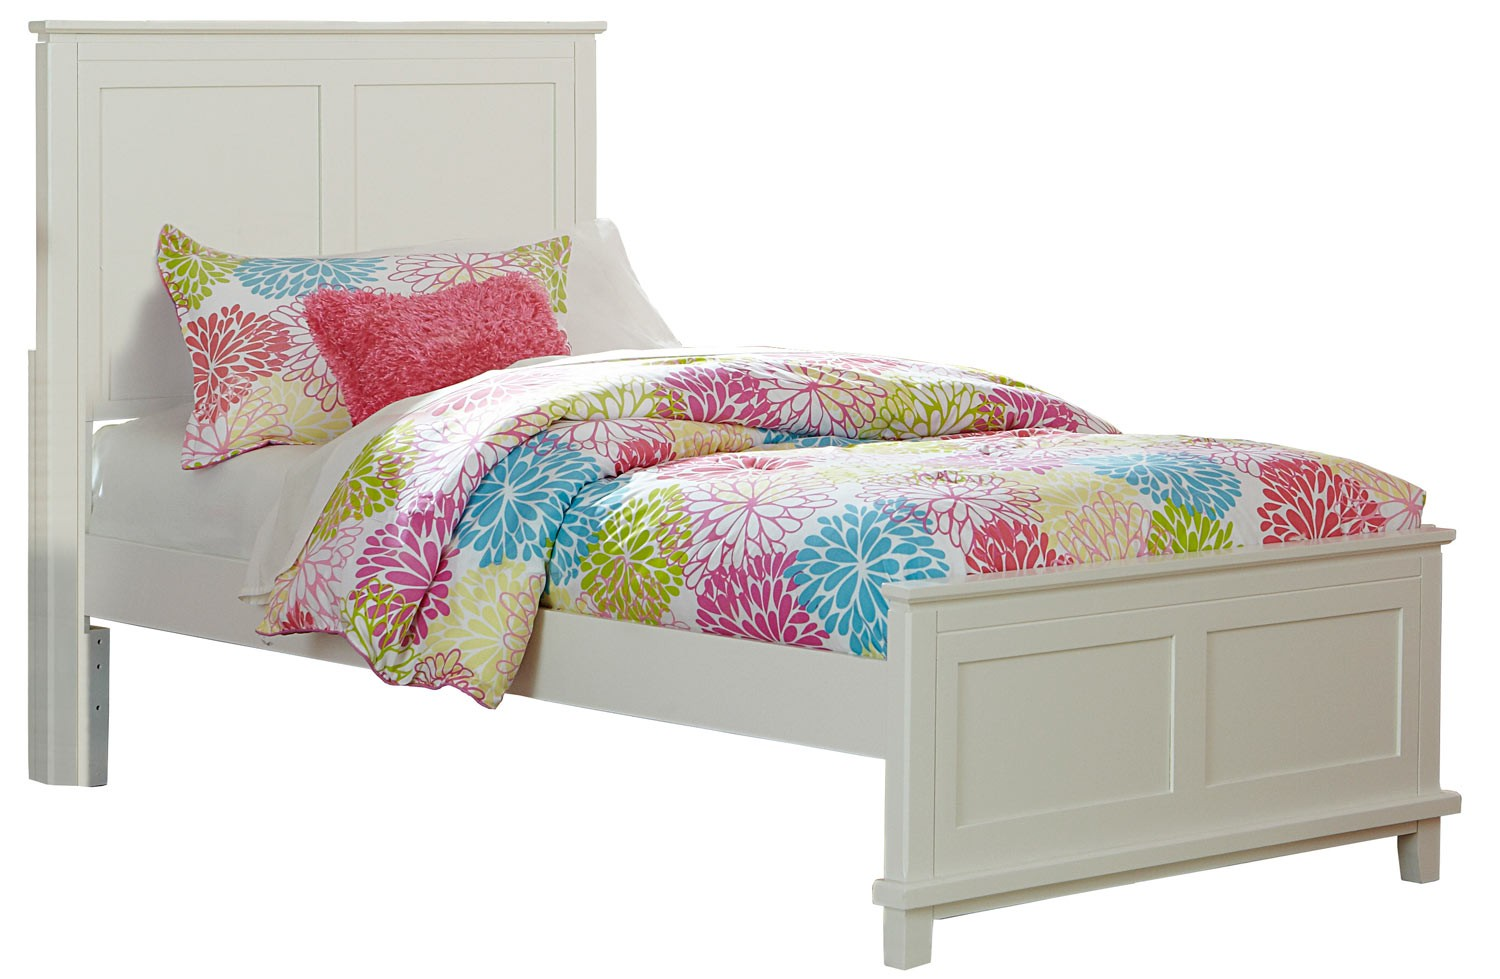 Hillsdale Bailey Panel Bed - White